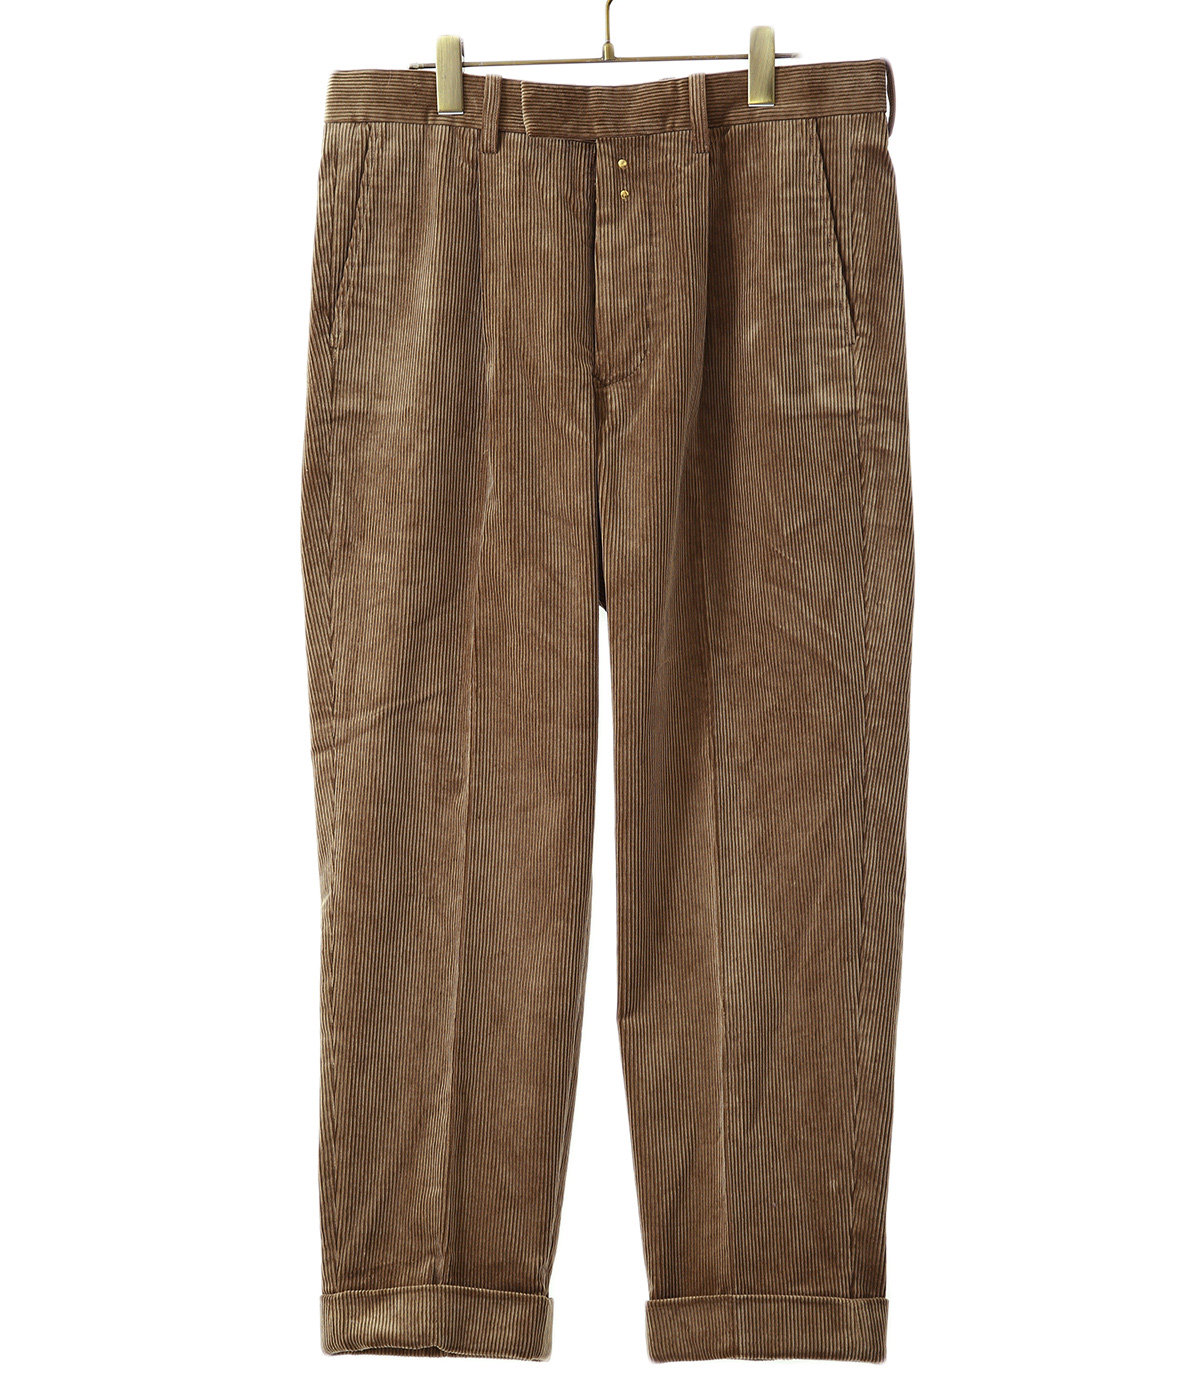 Cotton Corduroy Pleated Trousers